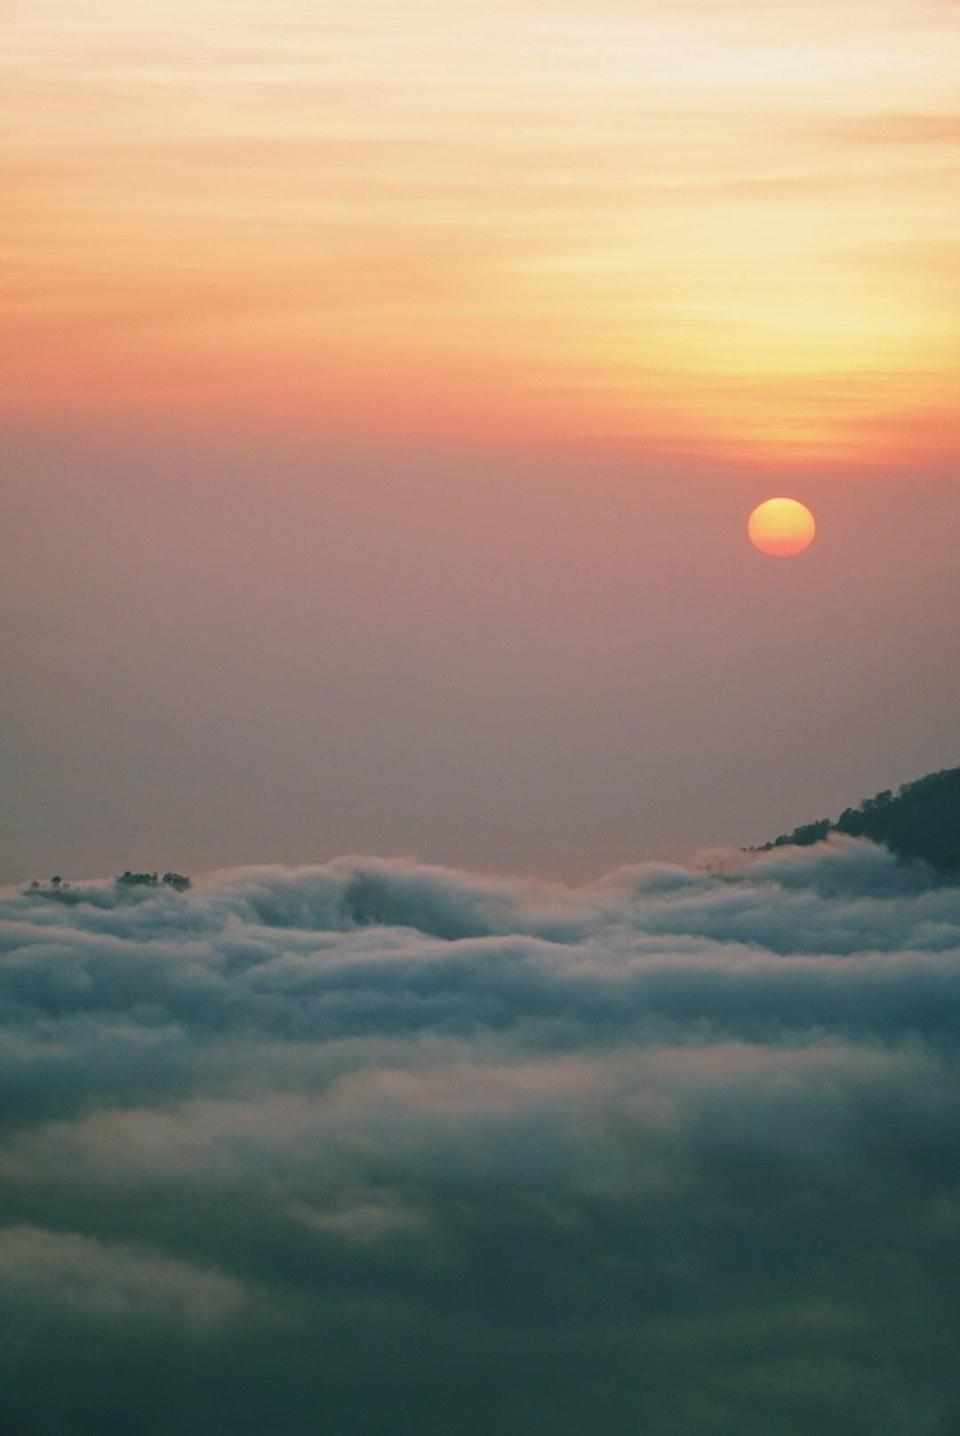 The sun rising over Mount Batur and the clouds.